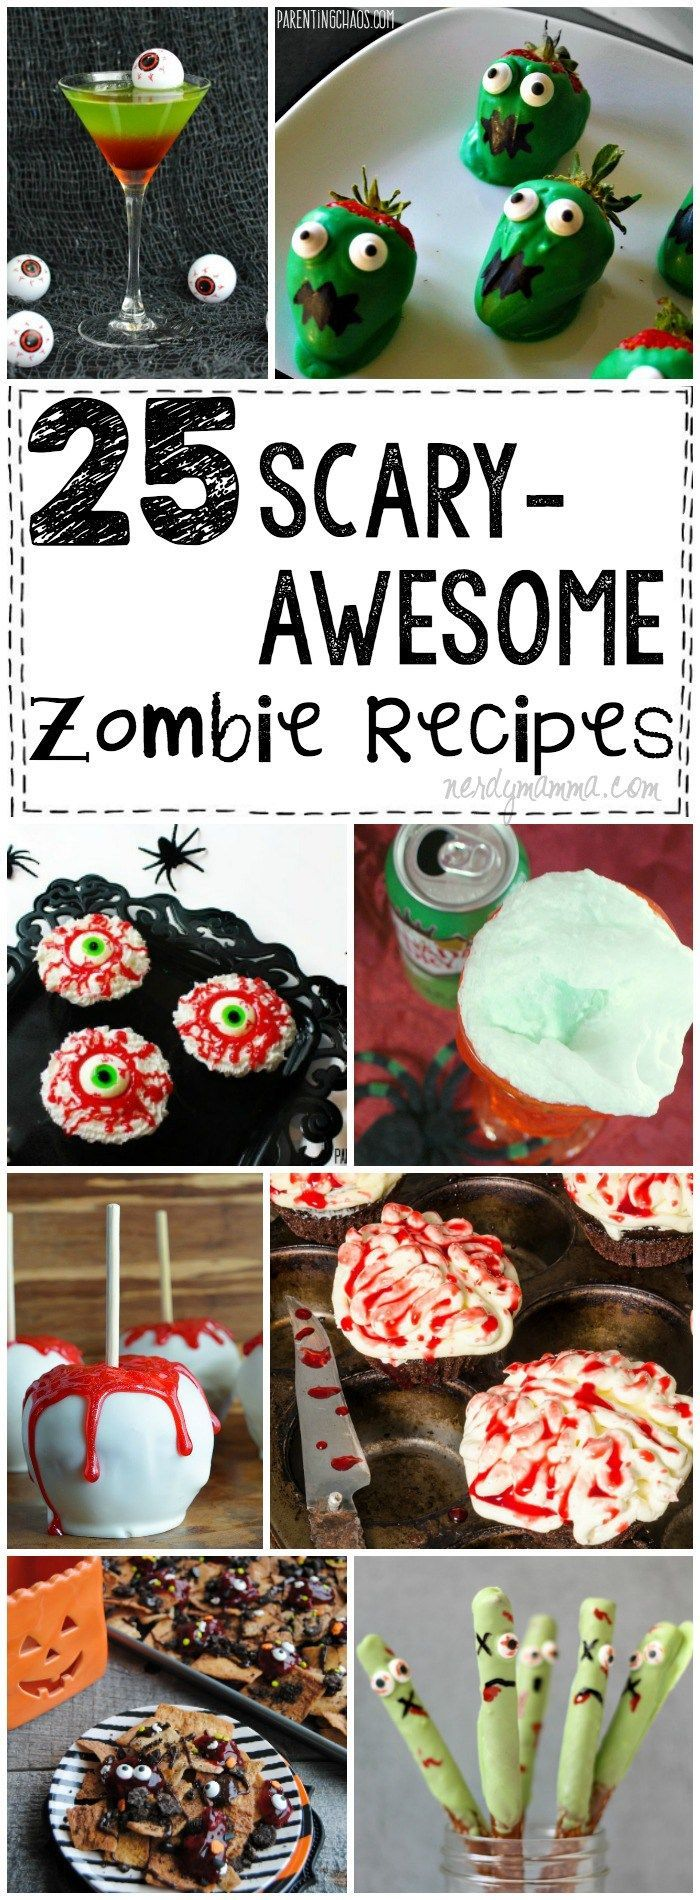 OMG! You have to check out these scary-awesome zombie recipes before your next…